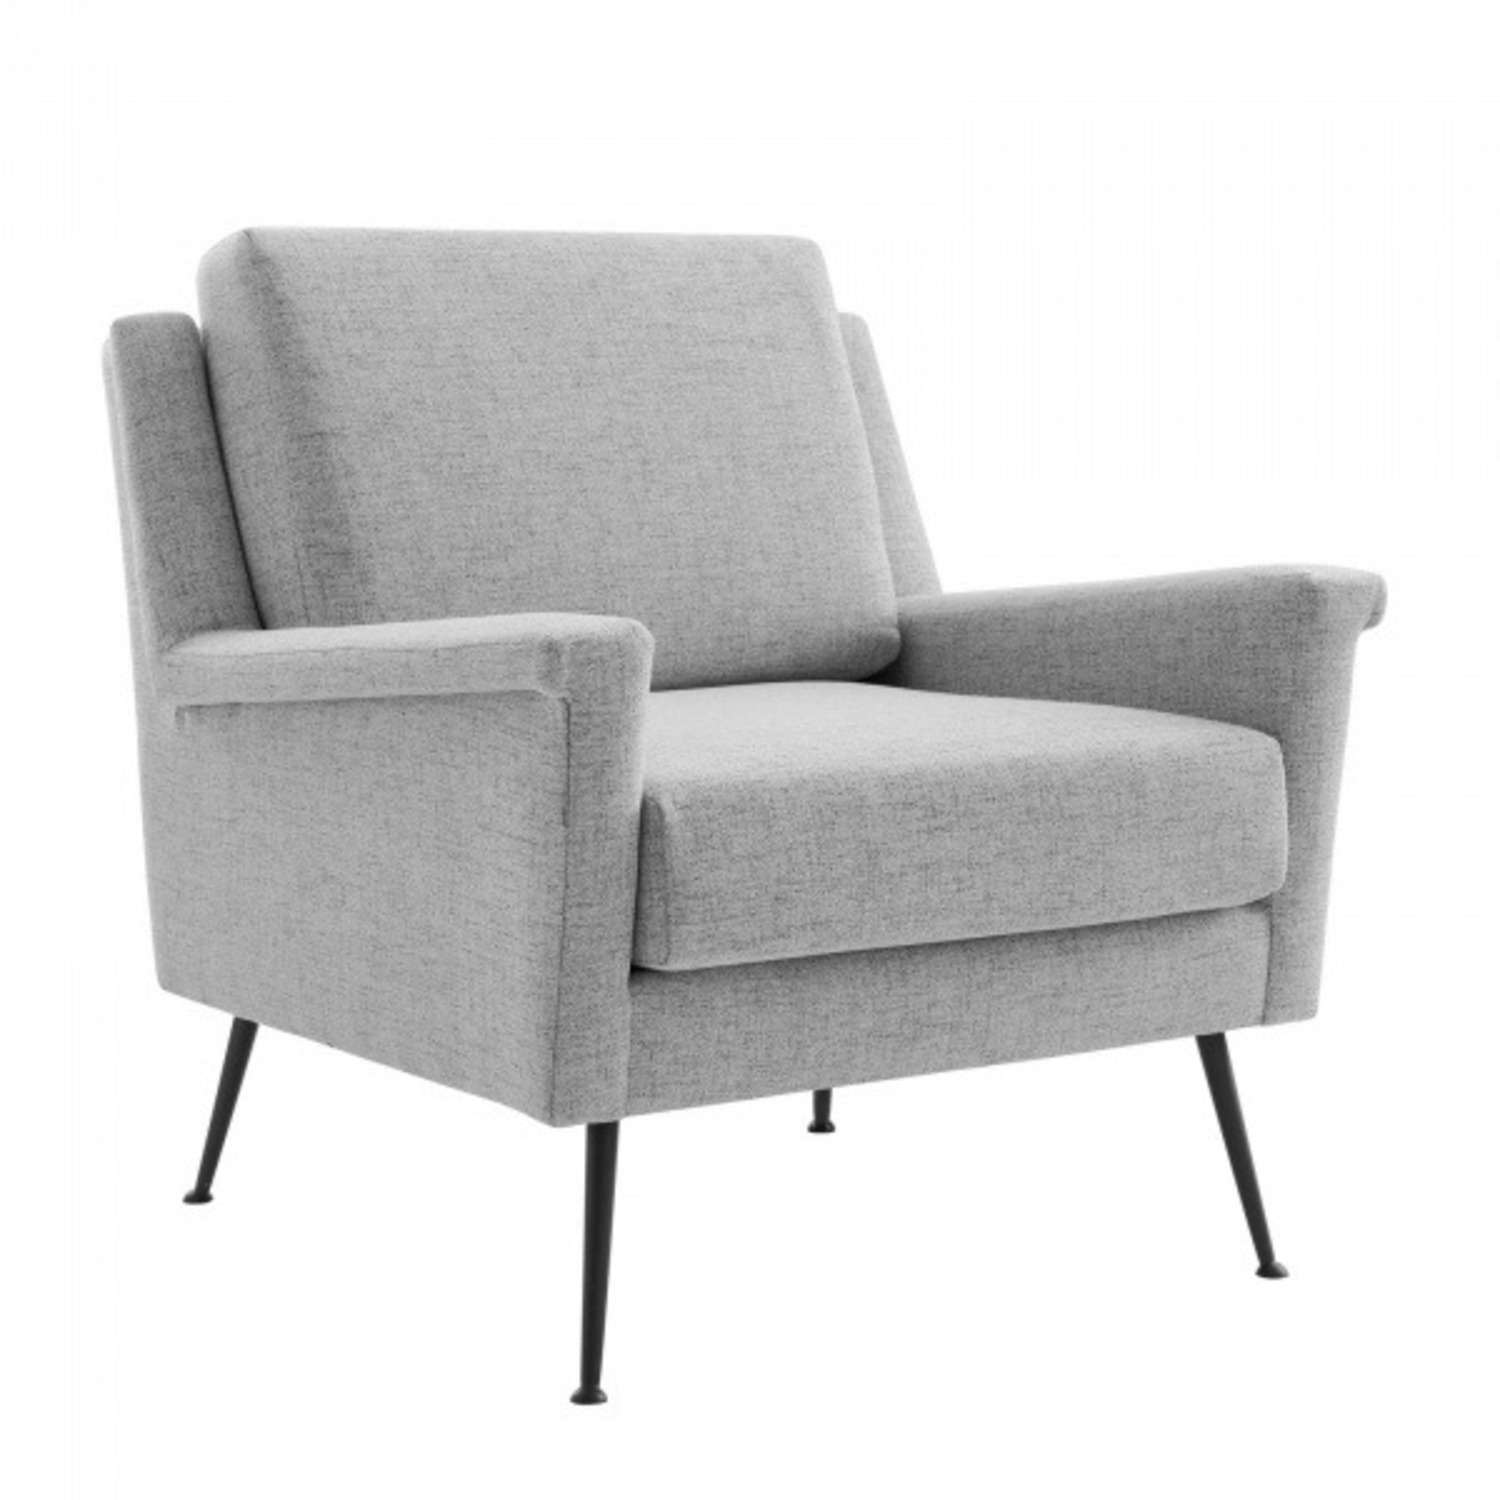 Modern Accent Armchair In Light Gray Fabric - image-1